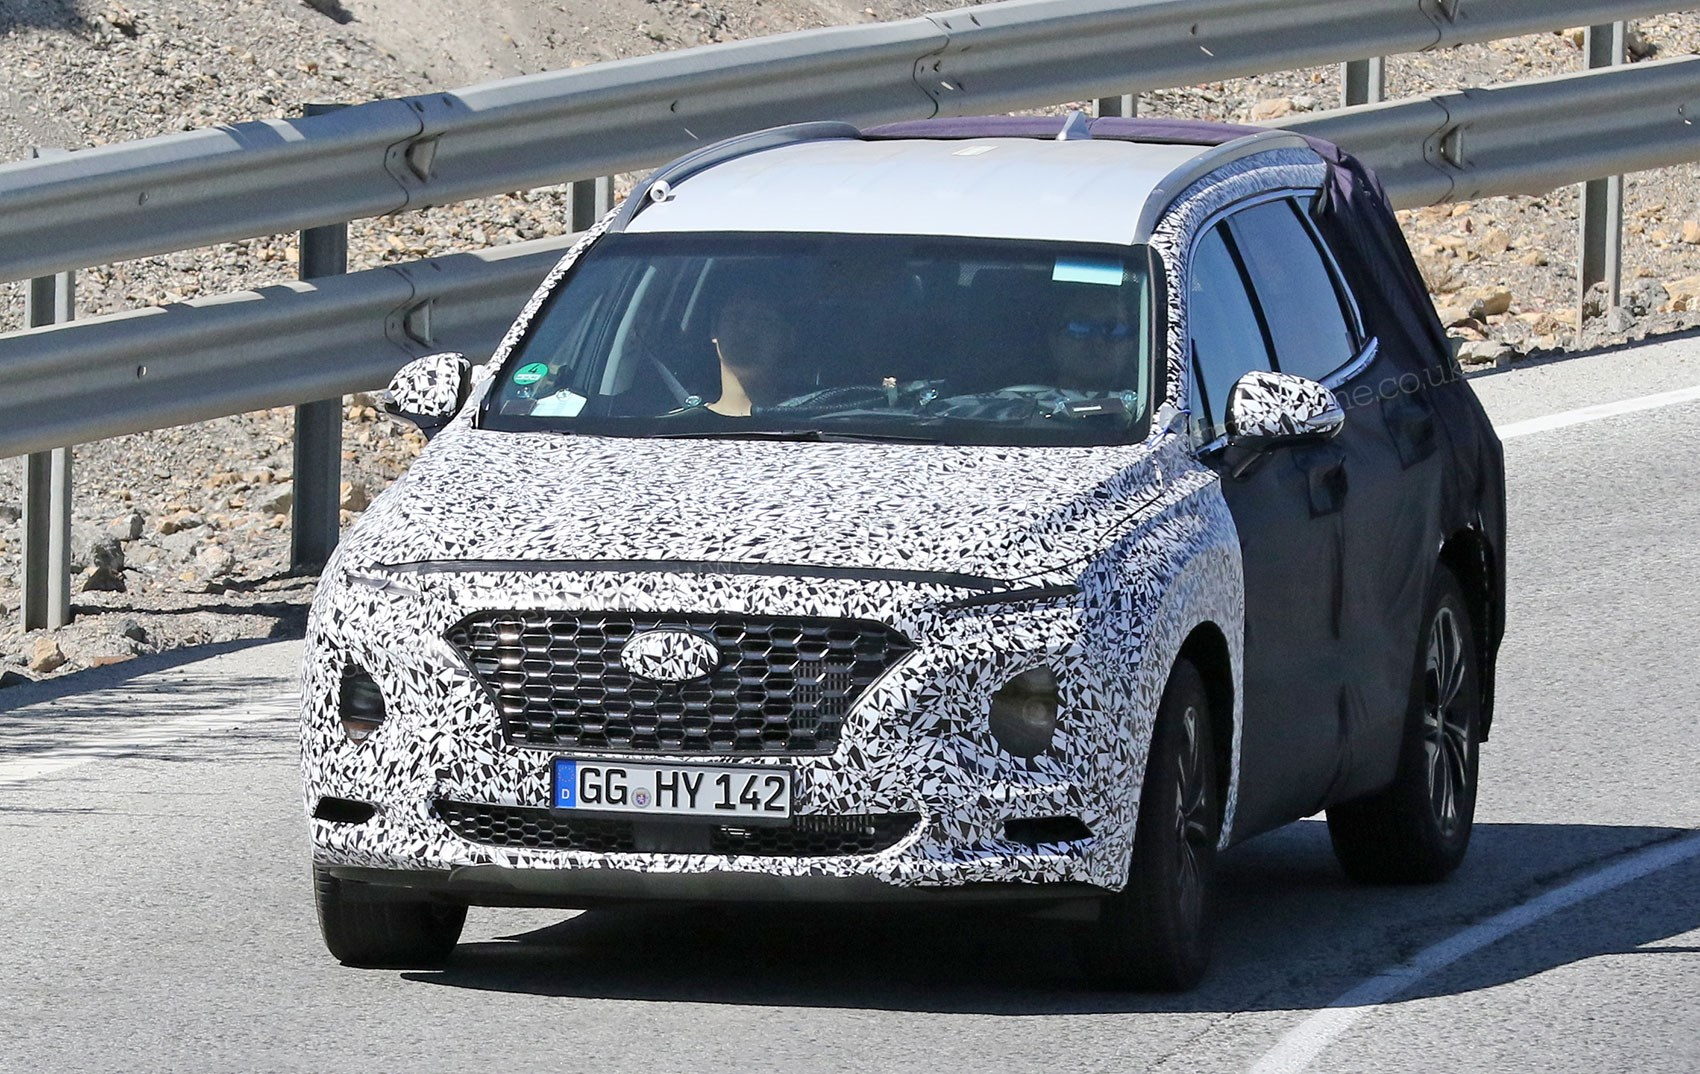 Hyundai previews next-gen FCEV, electric Kona confirmed